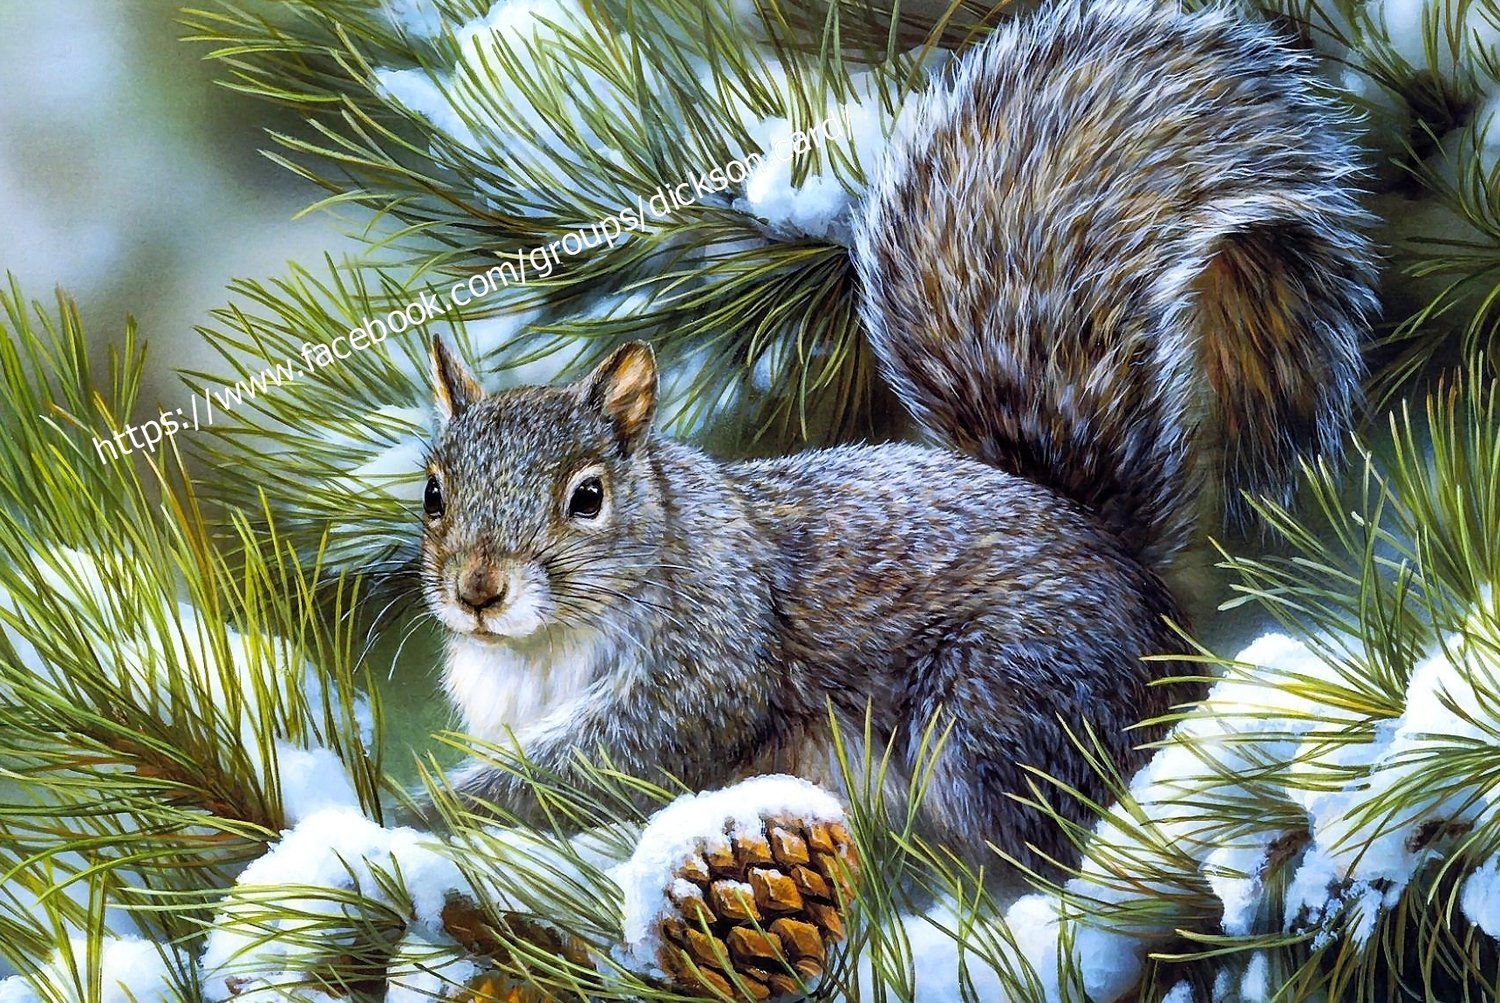 Squirrel in winter spruce branches